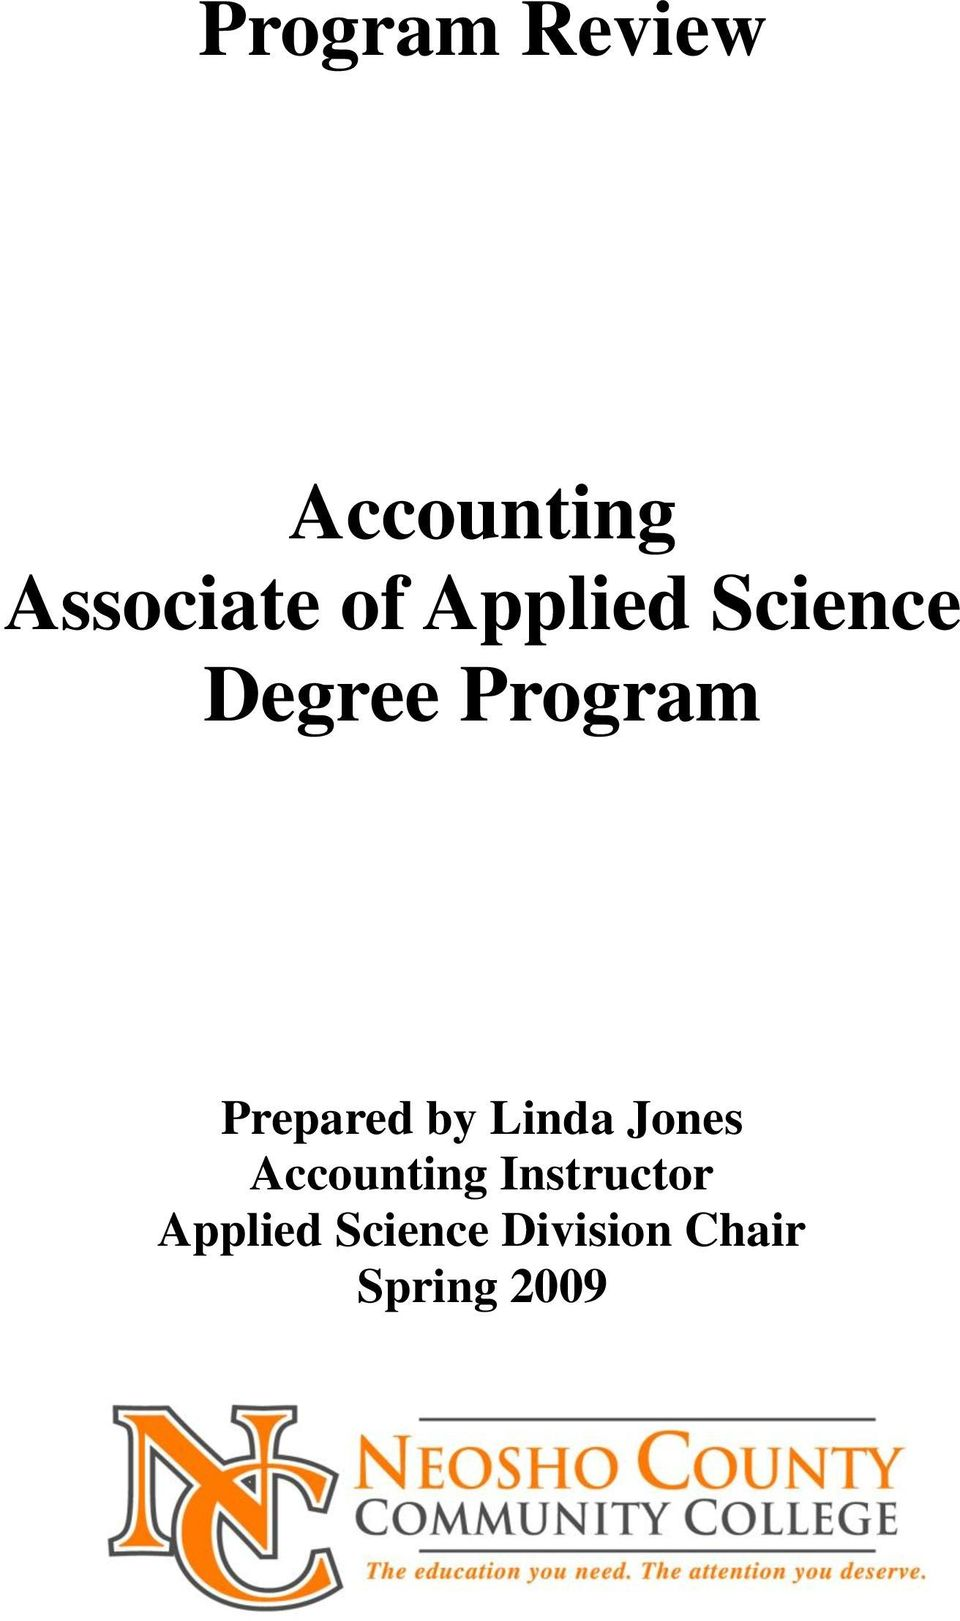 by Linda Jones Accounting Instructor